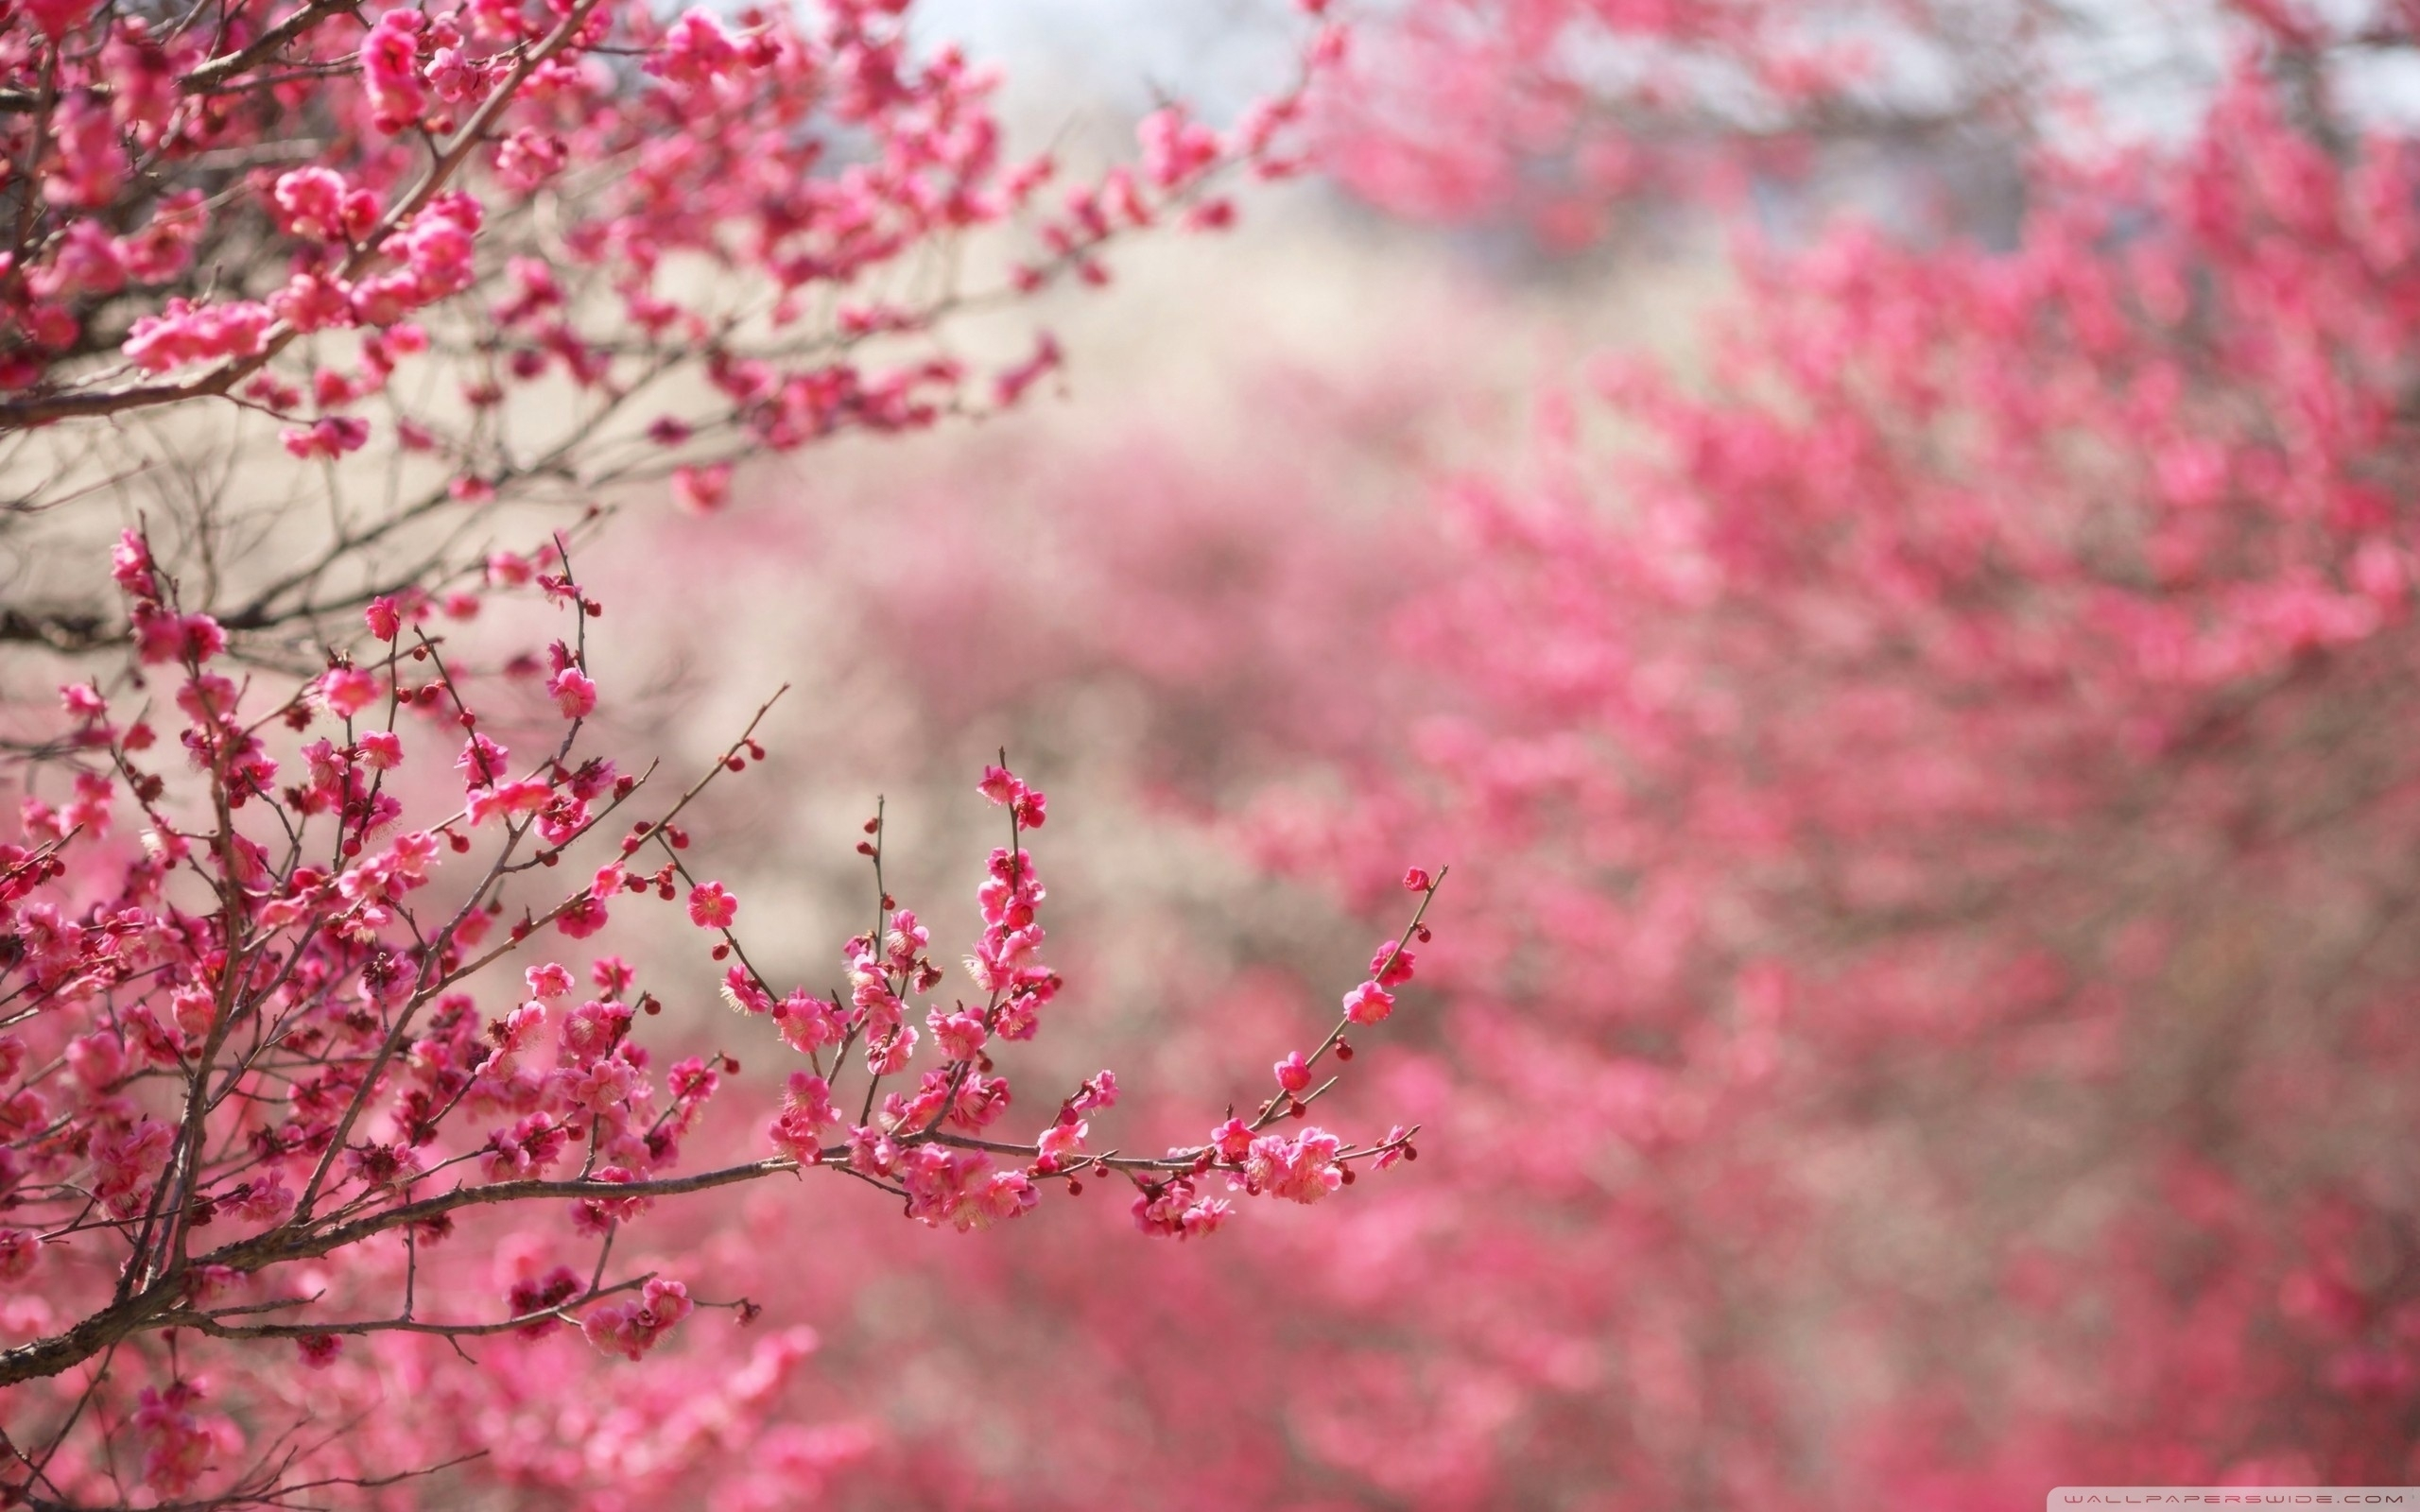 10 Latest Cherry Blossoms Wallpaper Hd FULL HD 1920×1080 For PC Background